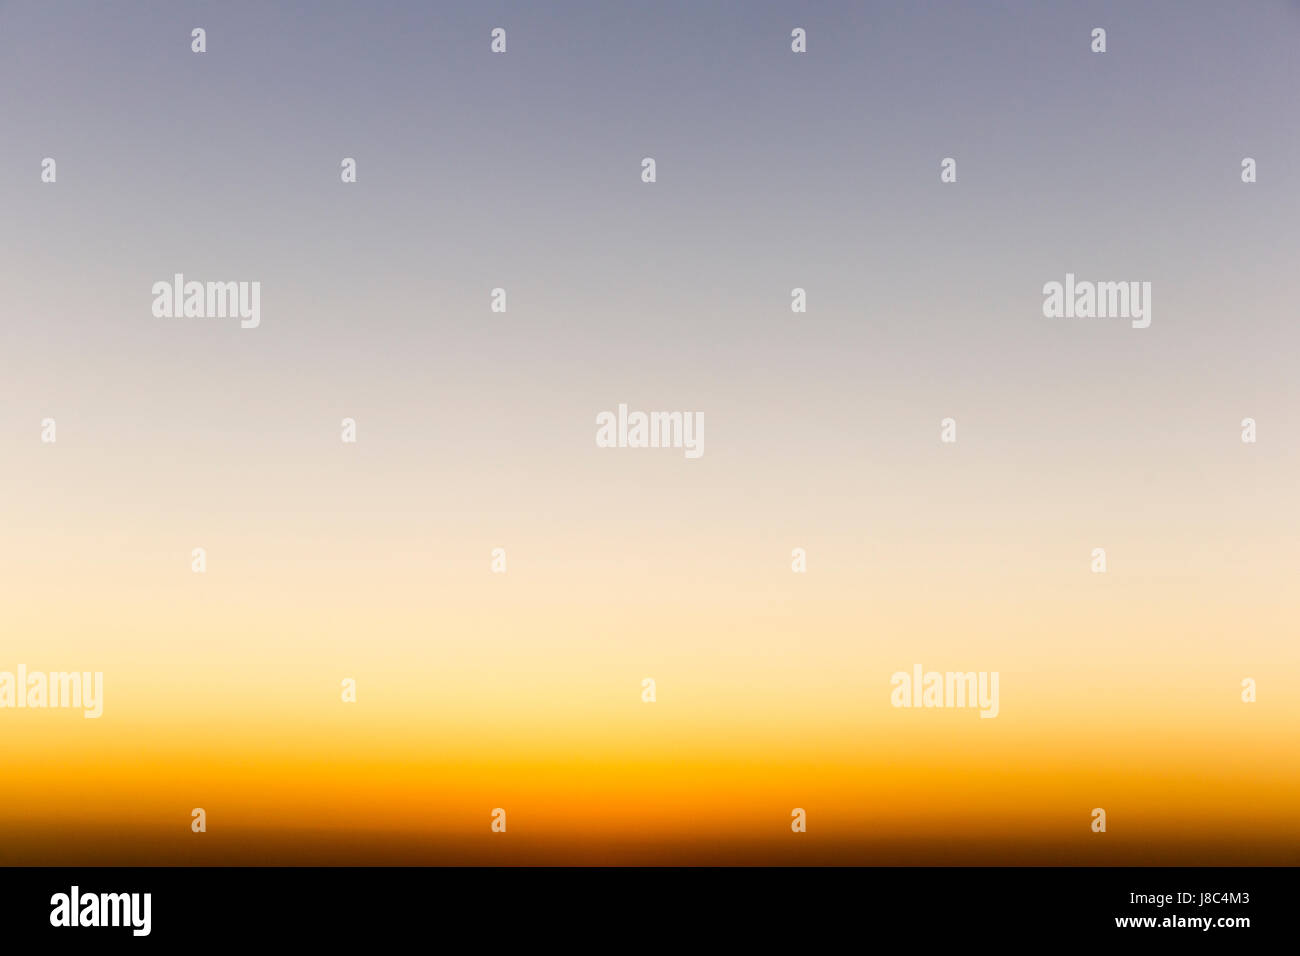 Gradient sunset image for background. - Stock Image